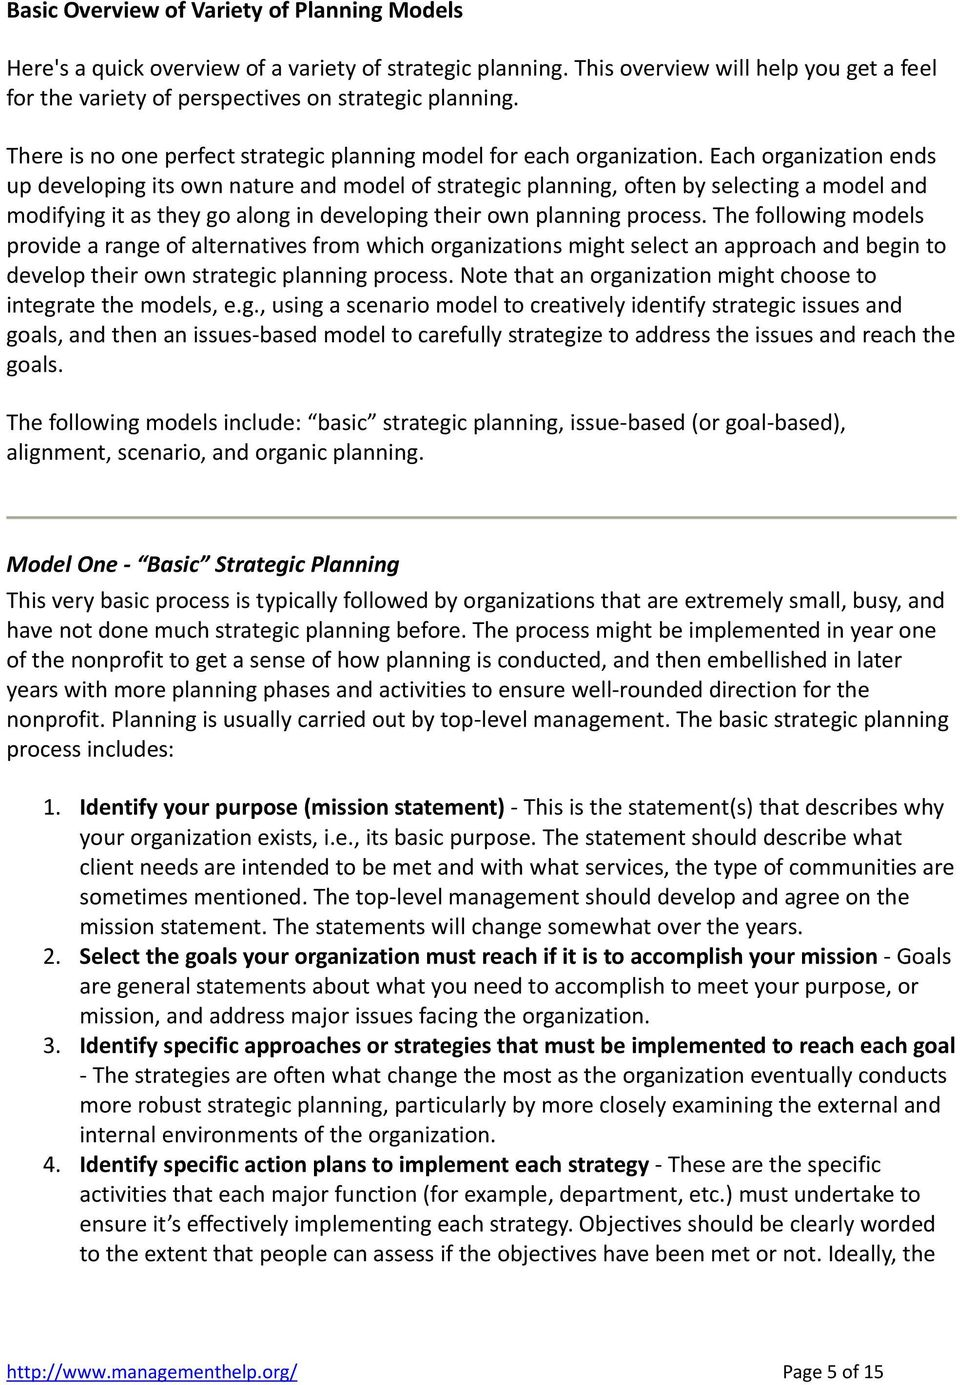 Strategic Planning (in nonprofit or for profit organizations